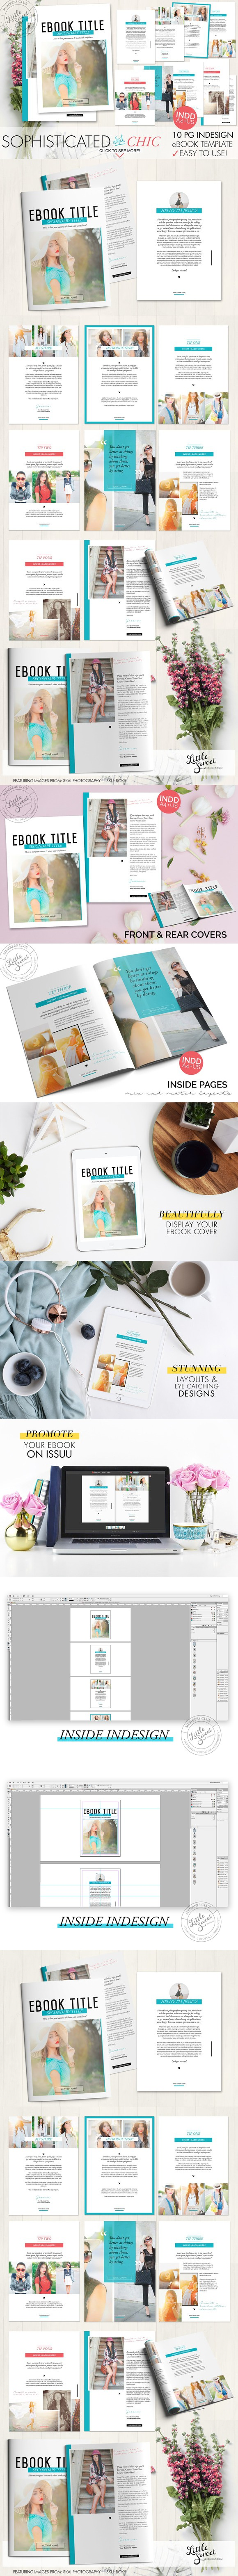 10page eBook Template InDesign + Pho | Pinterest